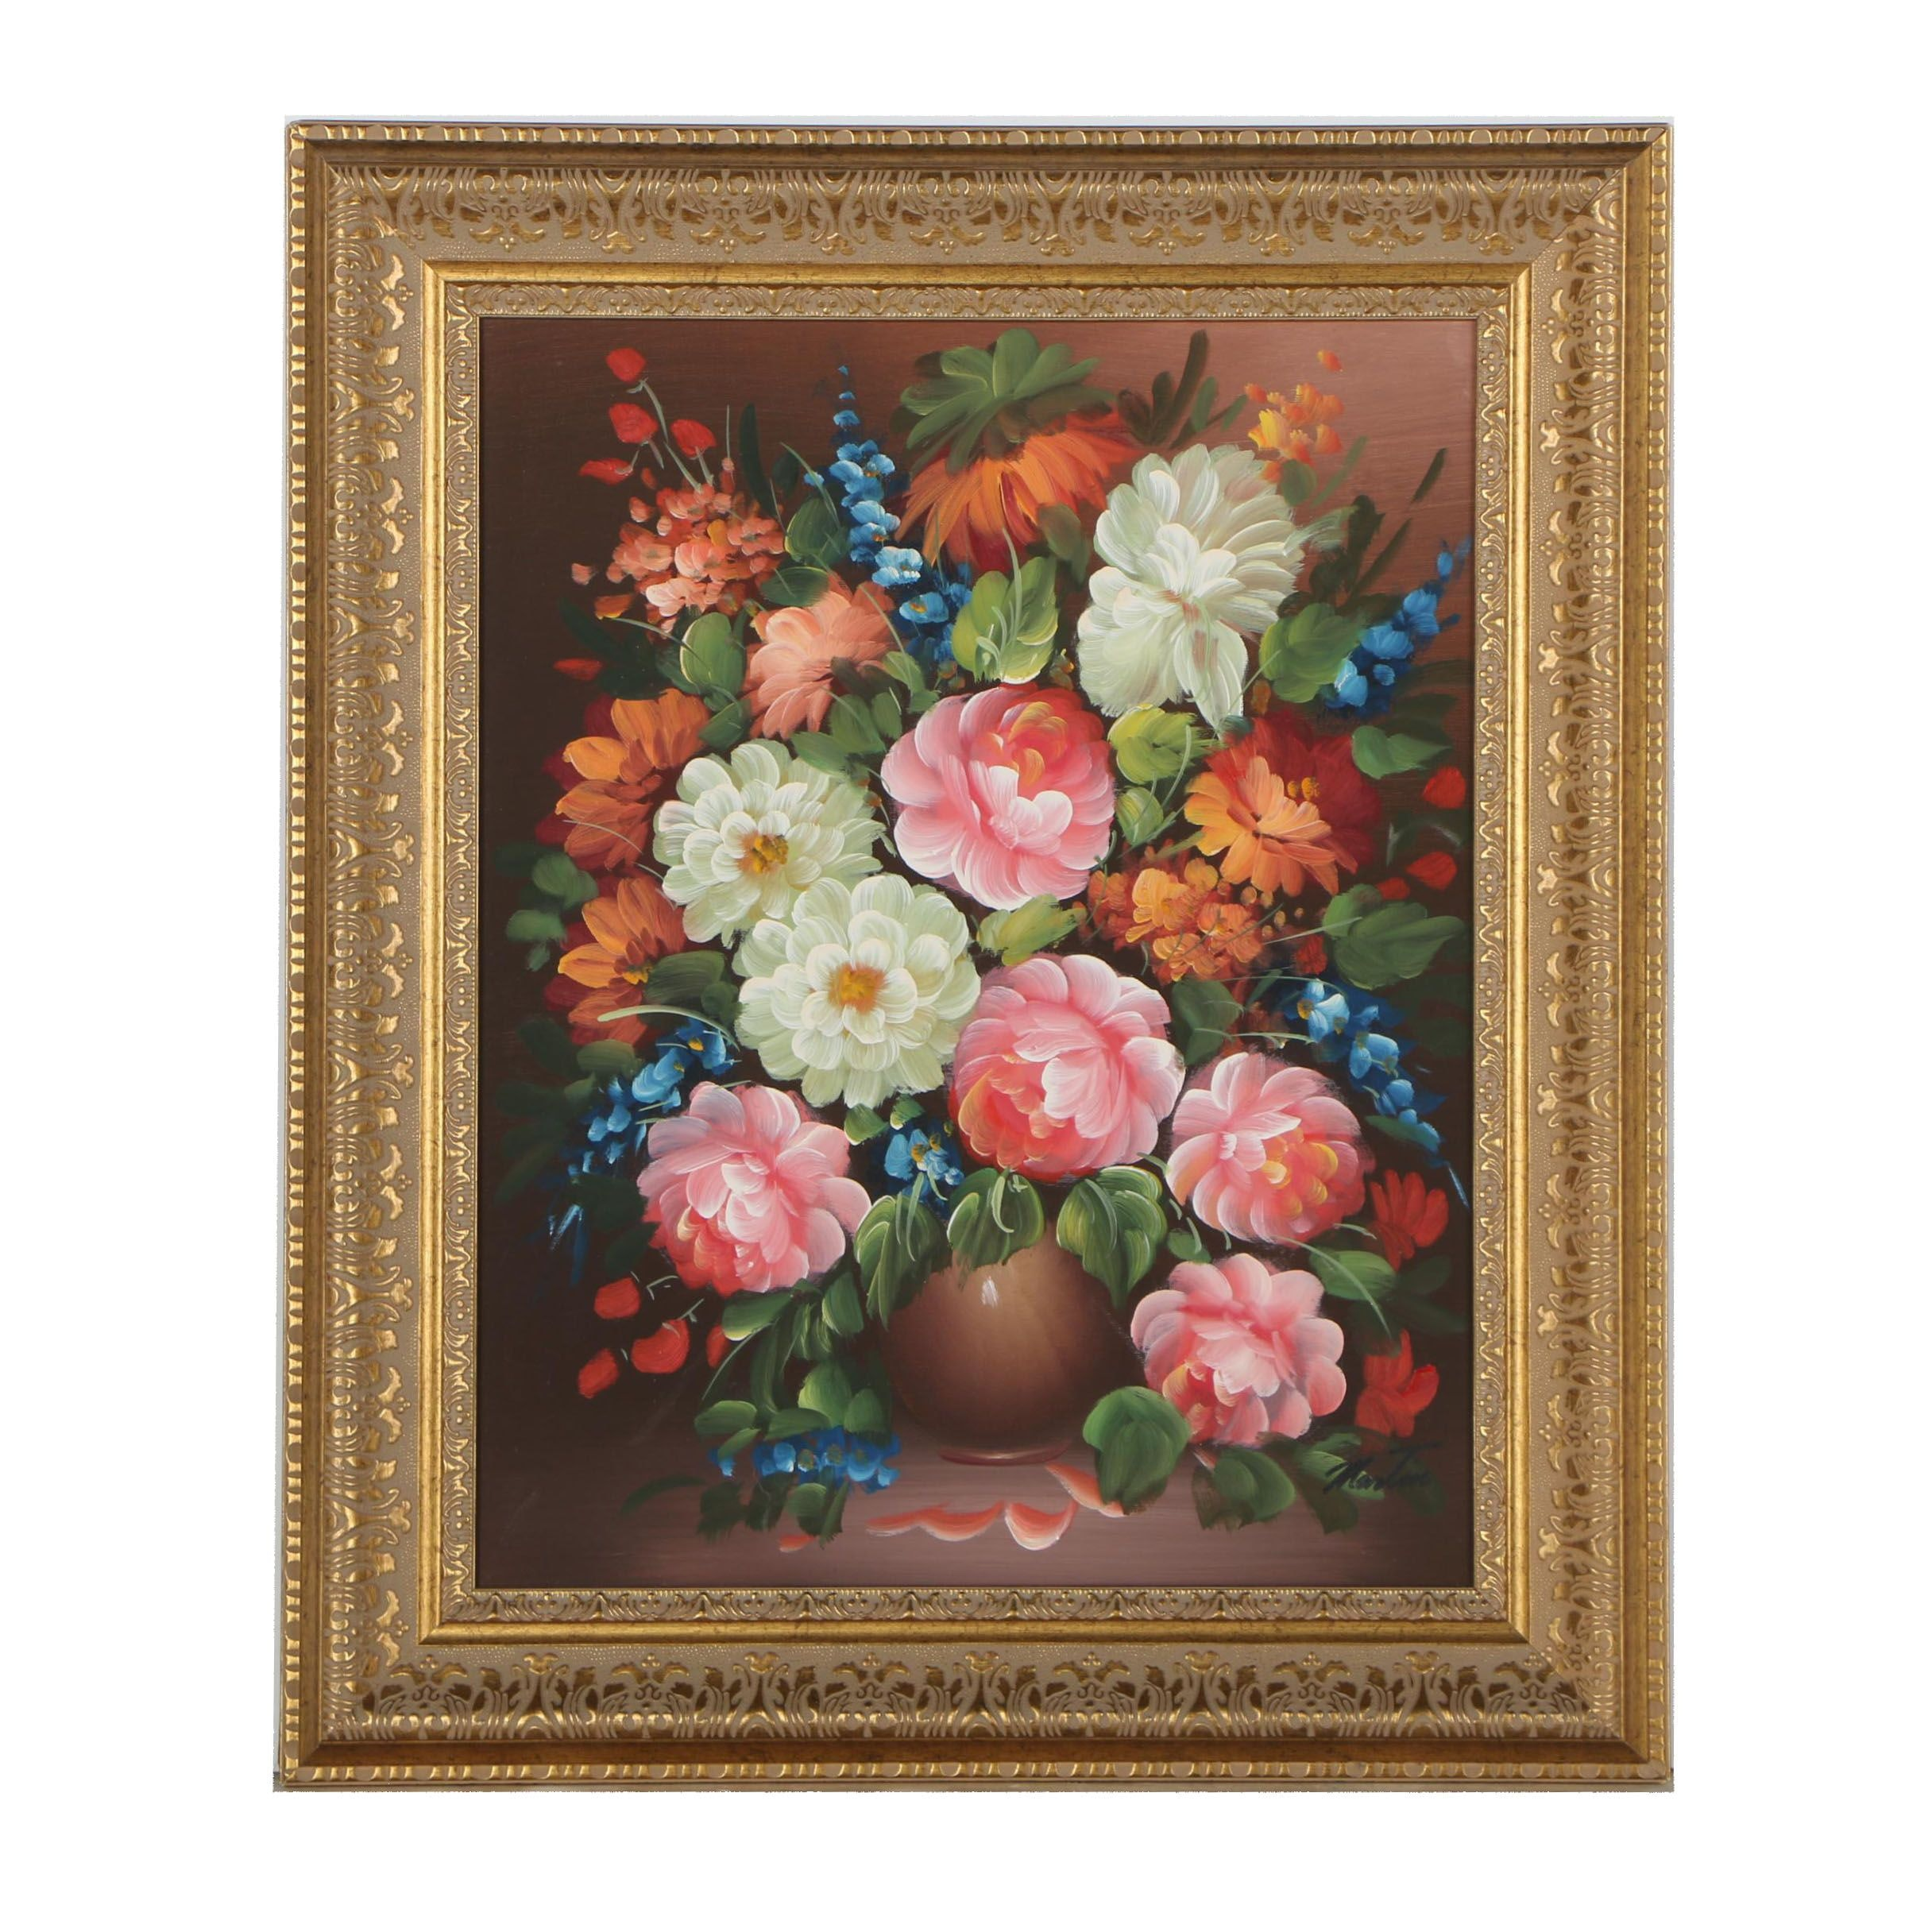 Martin Oil Painting of a Floral Still Life